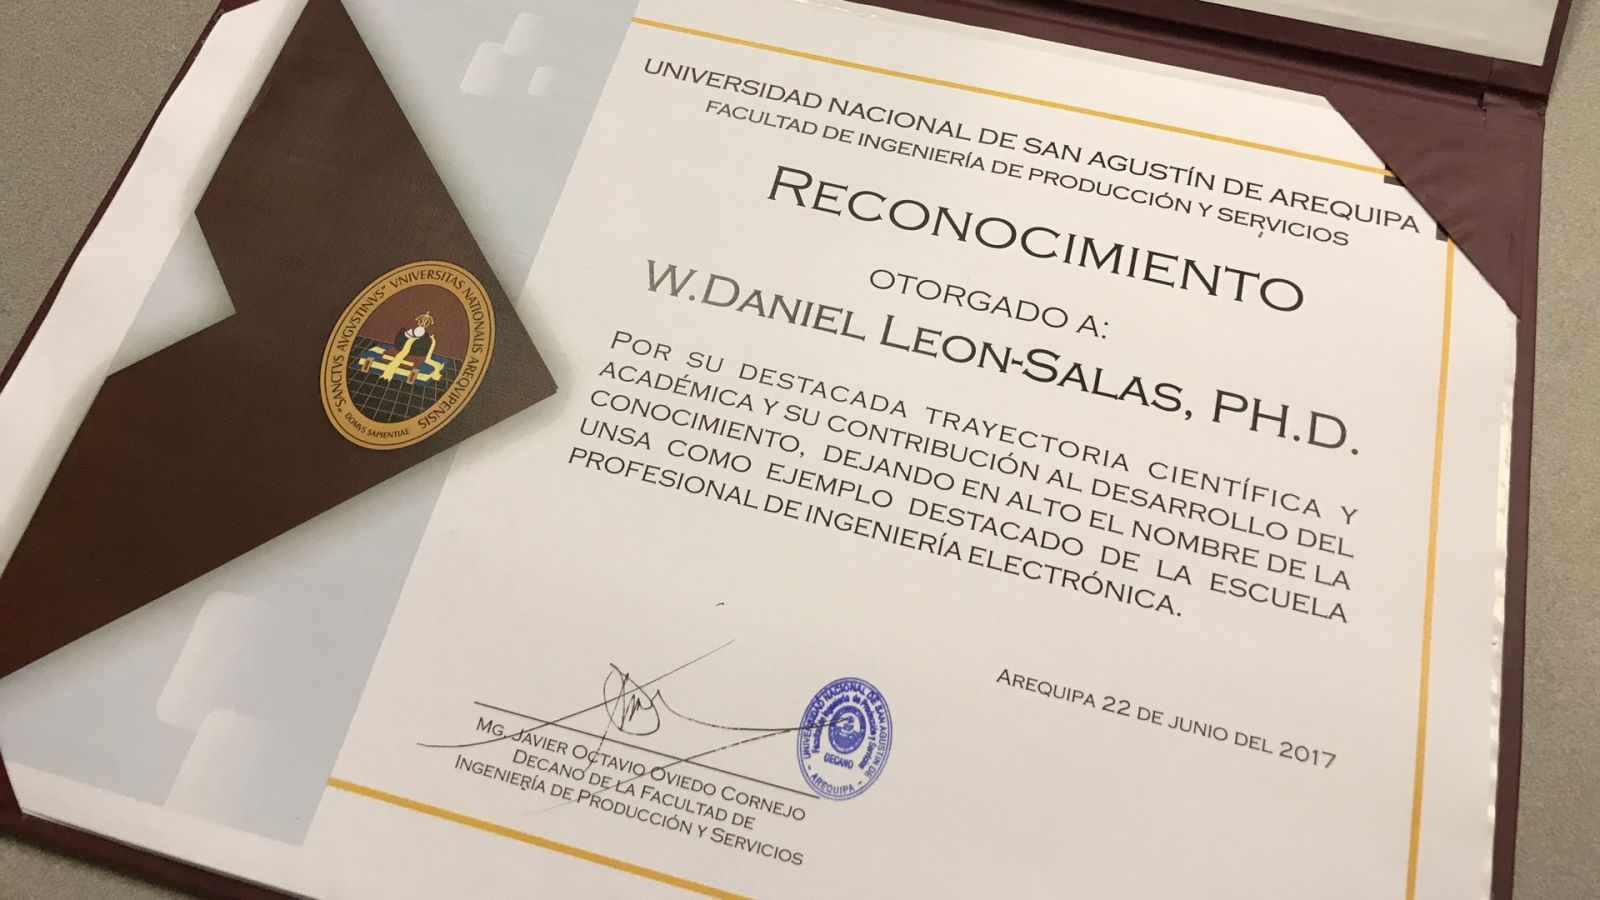 UNSA's certificate of recognition for Daniel Leon-Salas